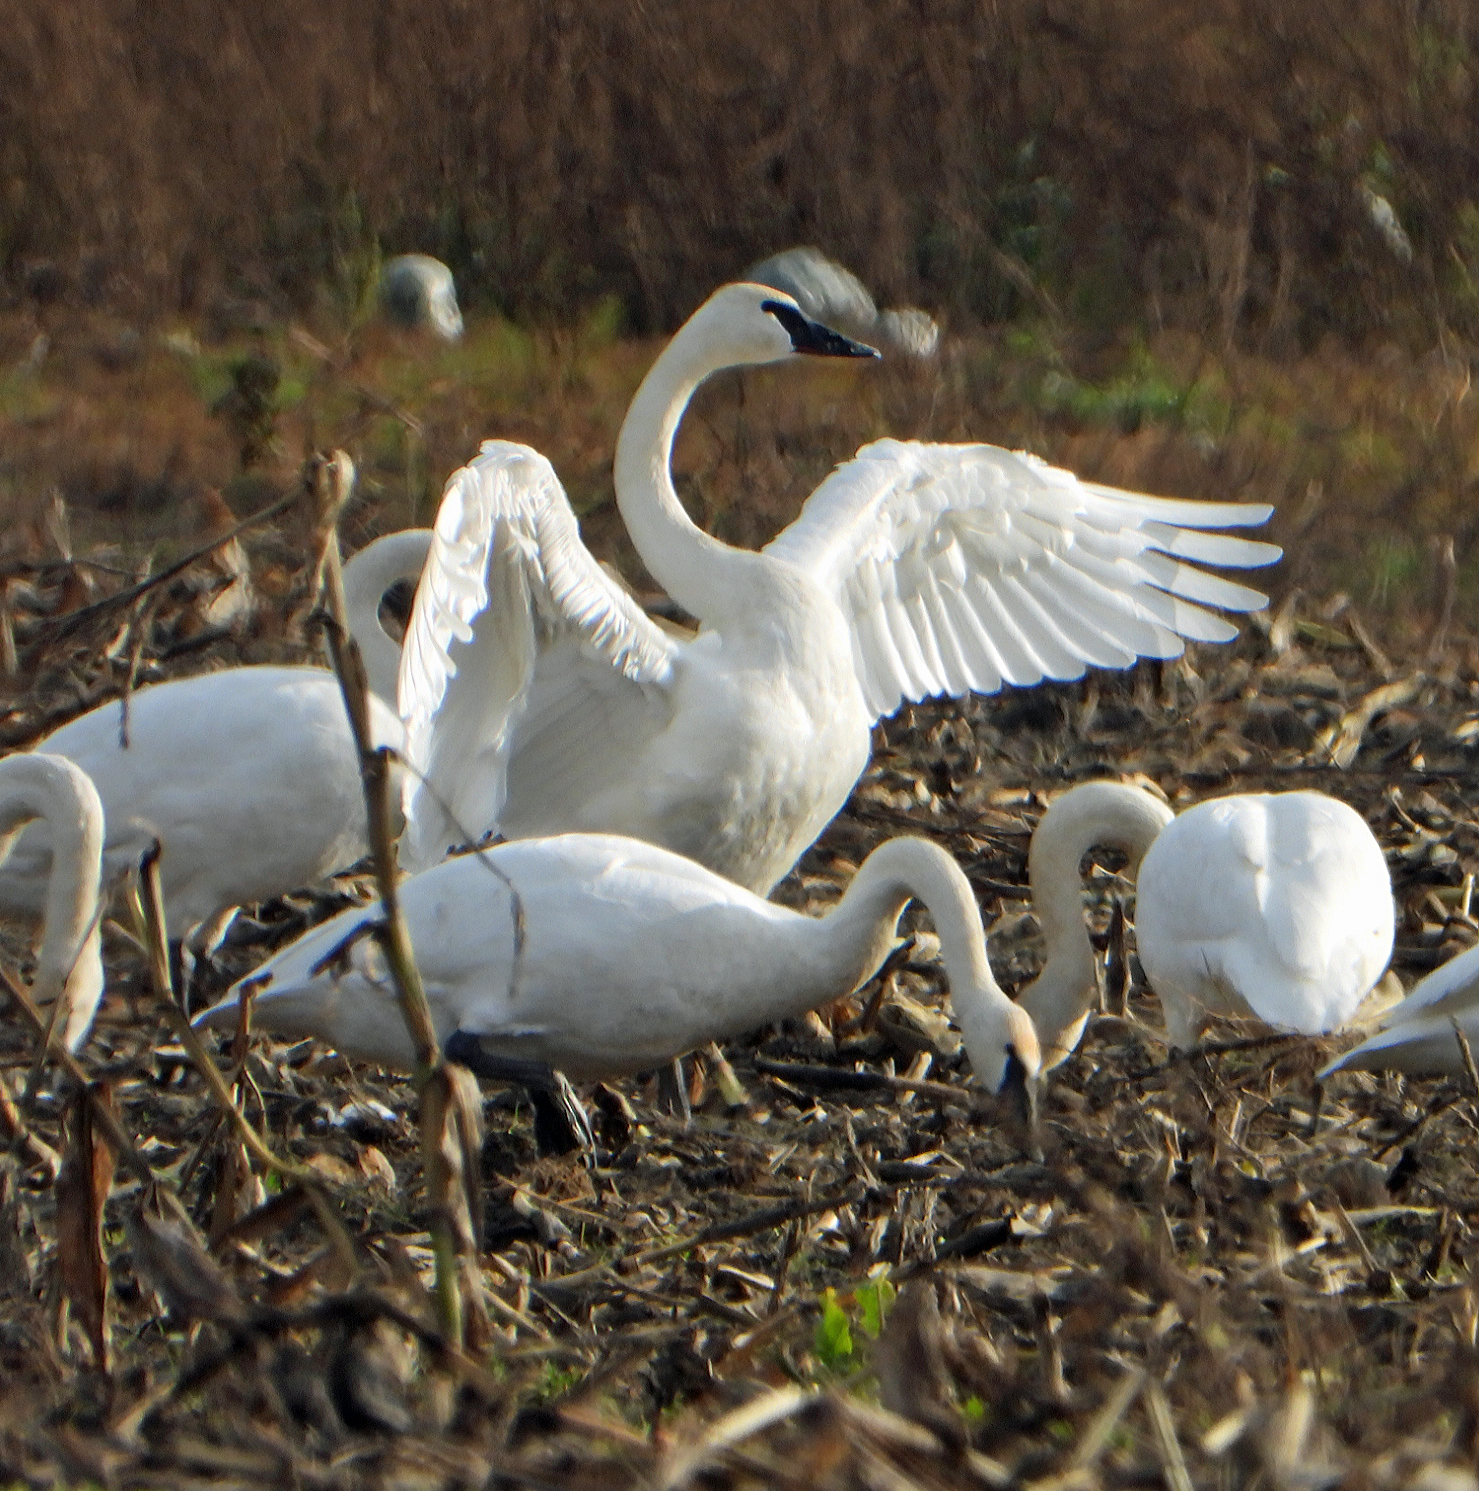 A group of white swans are feeding among brown corn stubble while one spreads its wings over them.